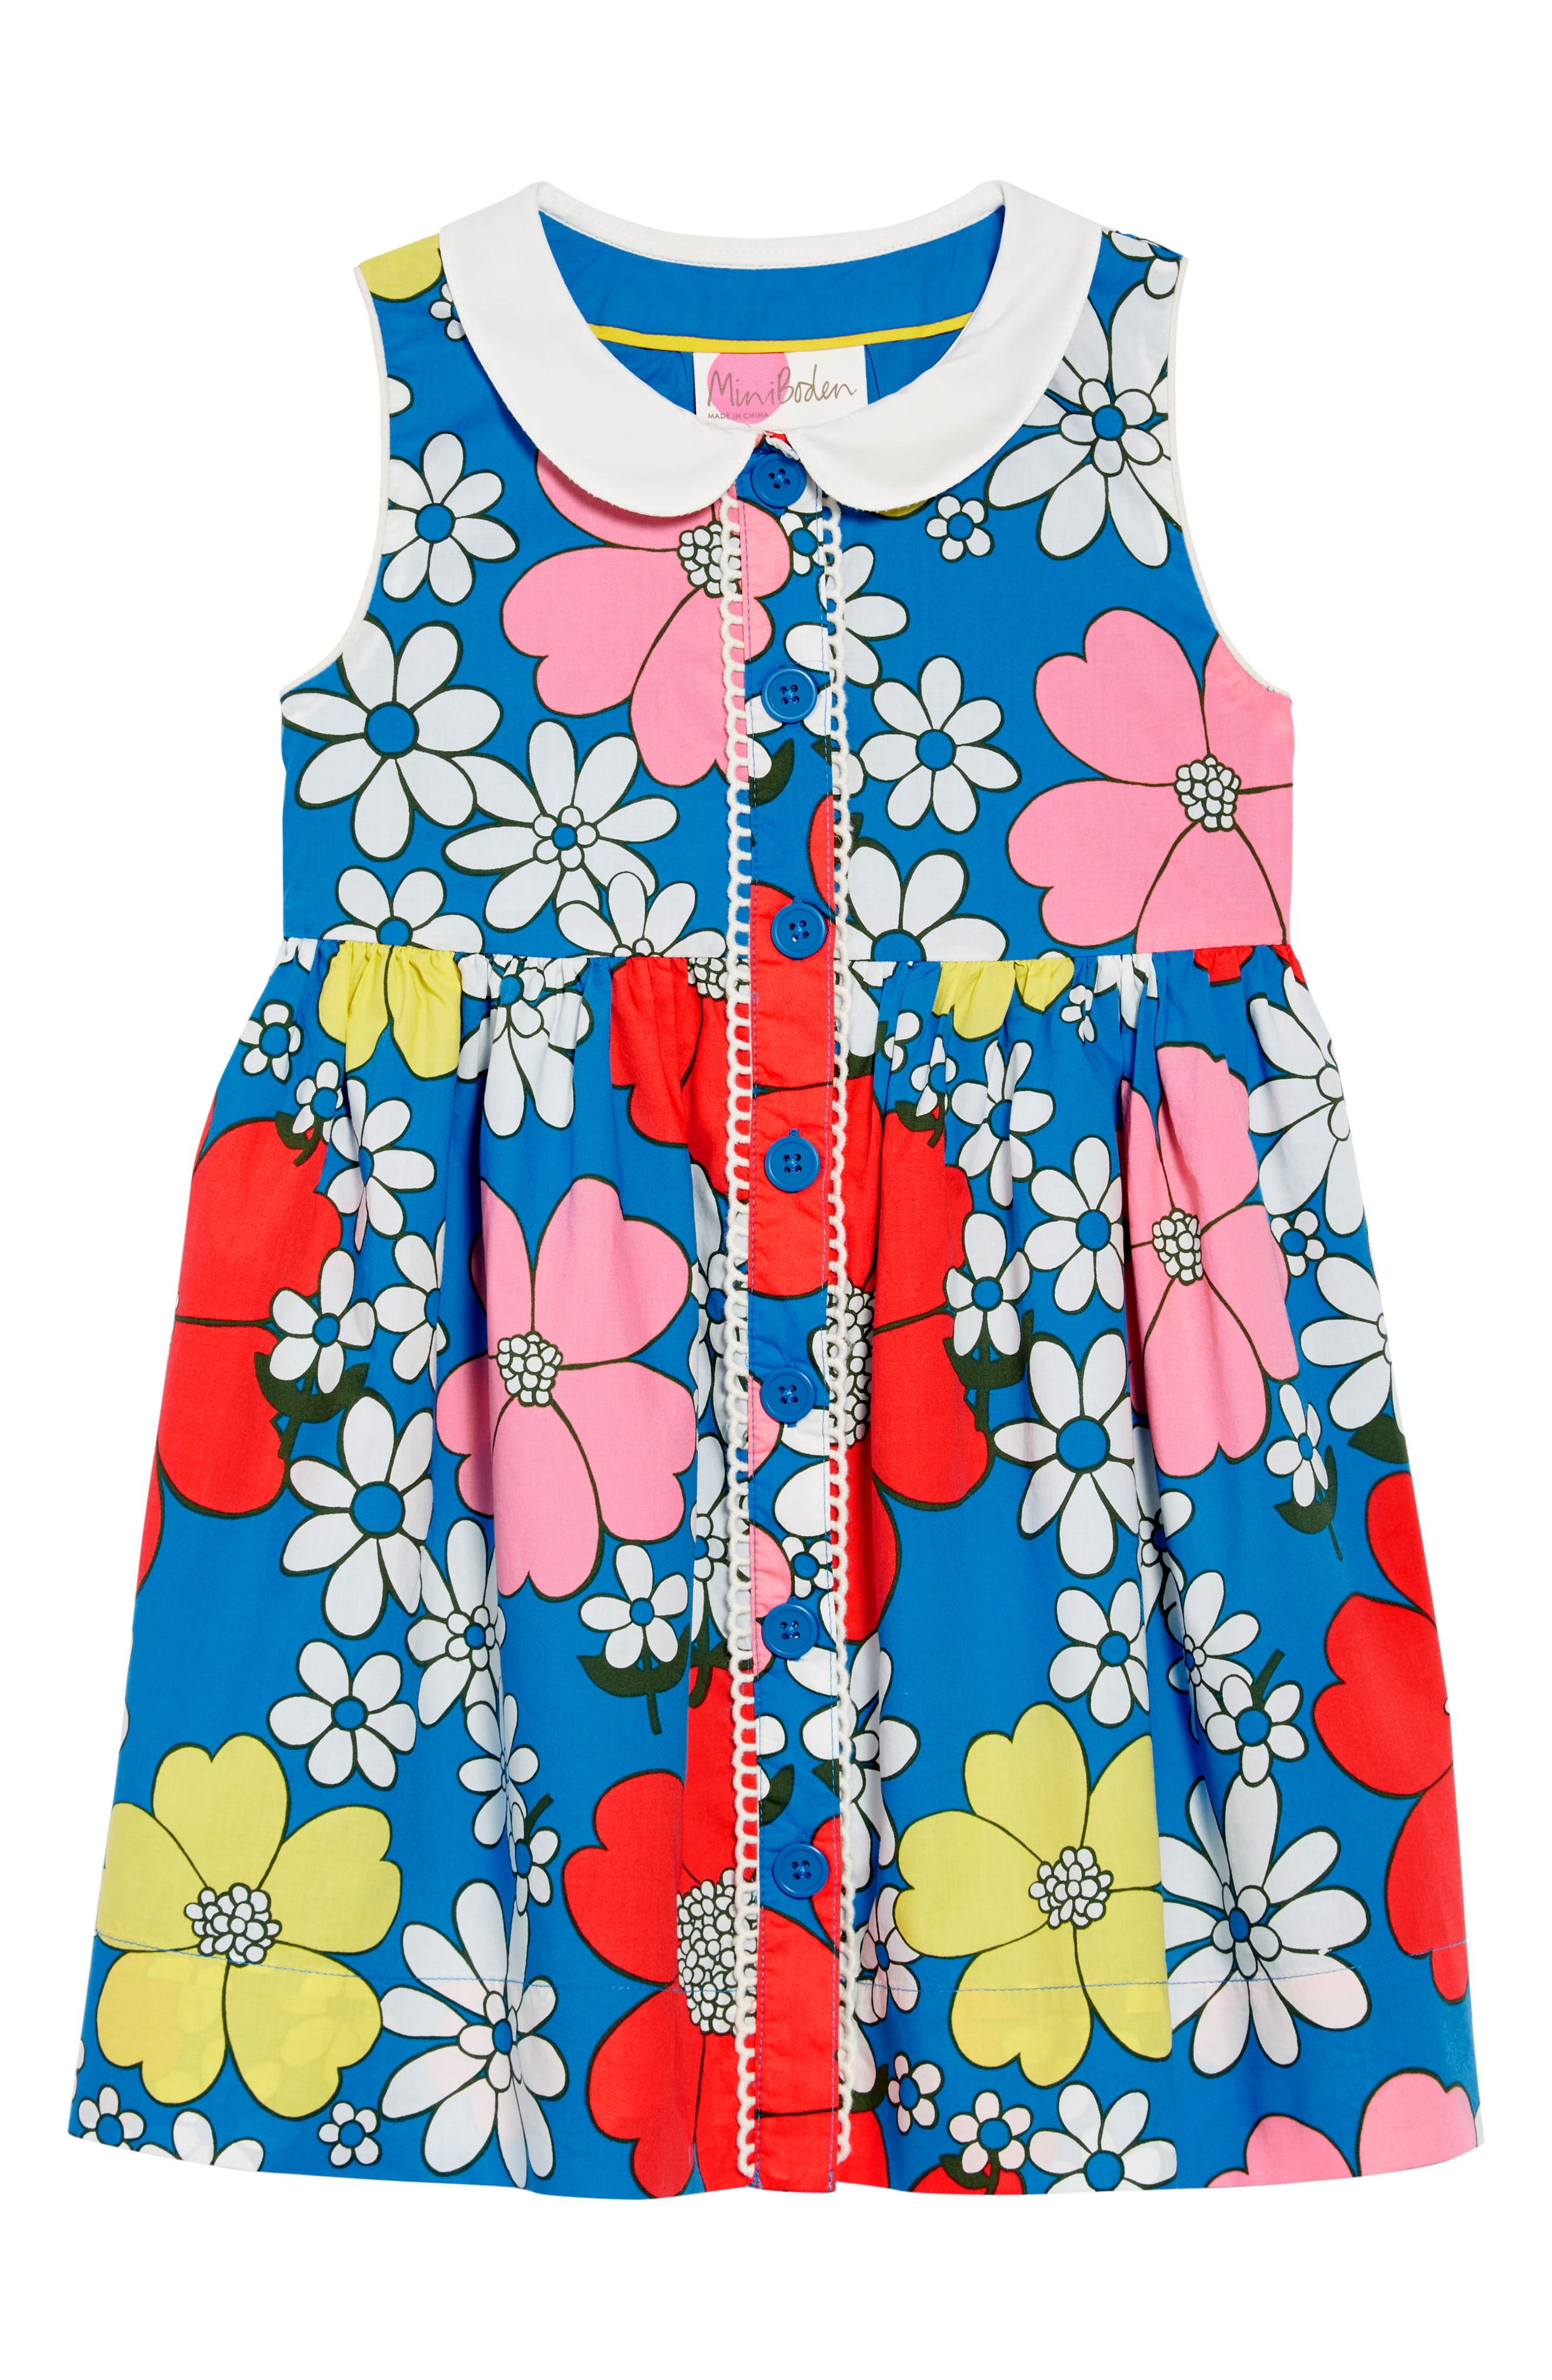 Floral Collared Dress,                             Main thumbnail 1, color,                             Blufluro Blue Flower Power